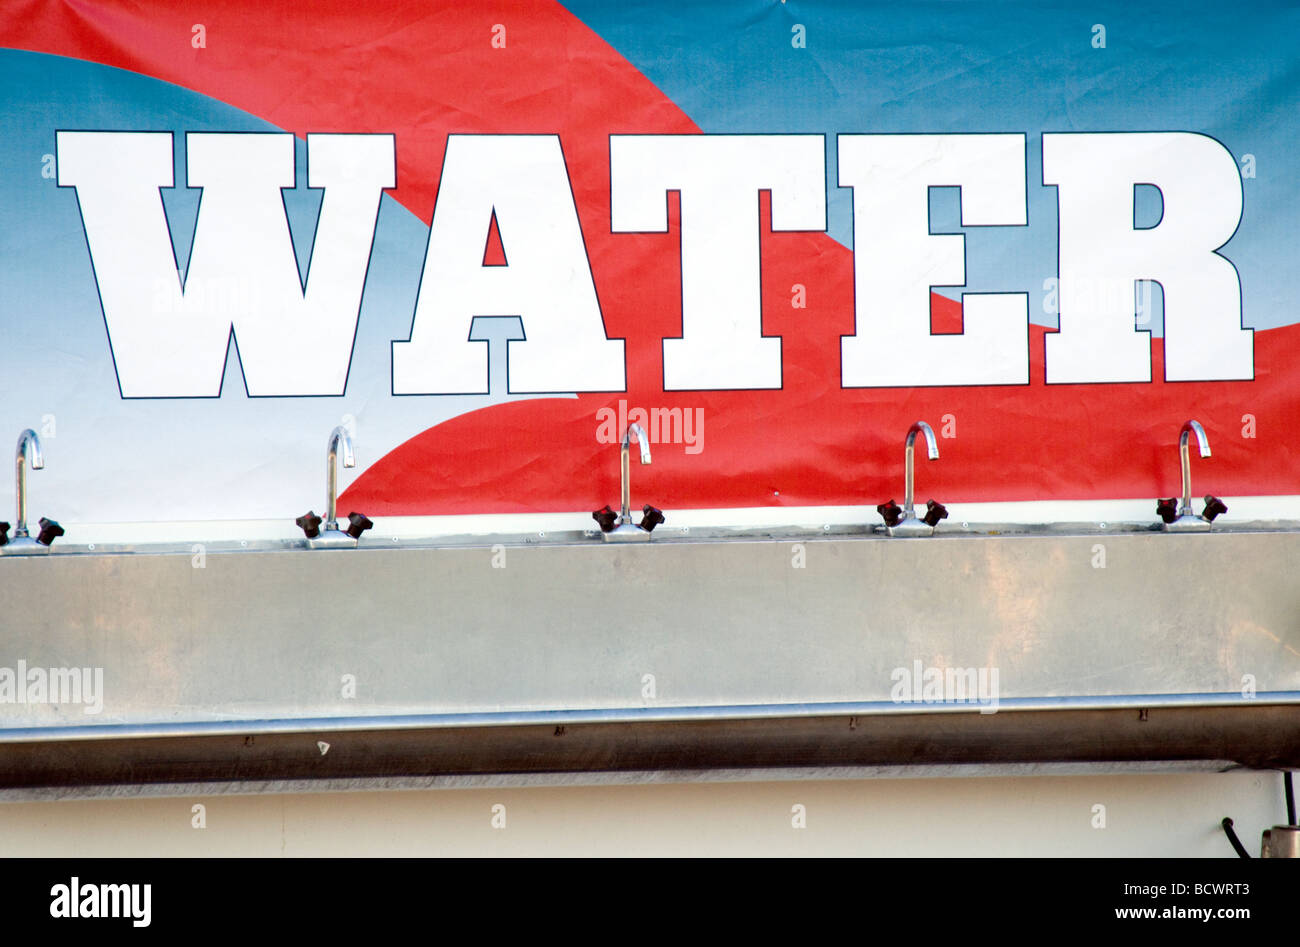 fresh clean water tap taps plumbing plumber hydration mixer mixing wash washing drink drinking drinks h2o plumbers - Stock Image